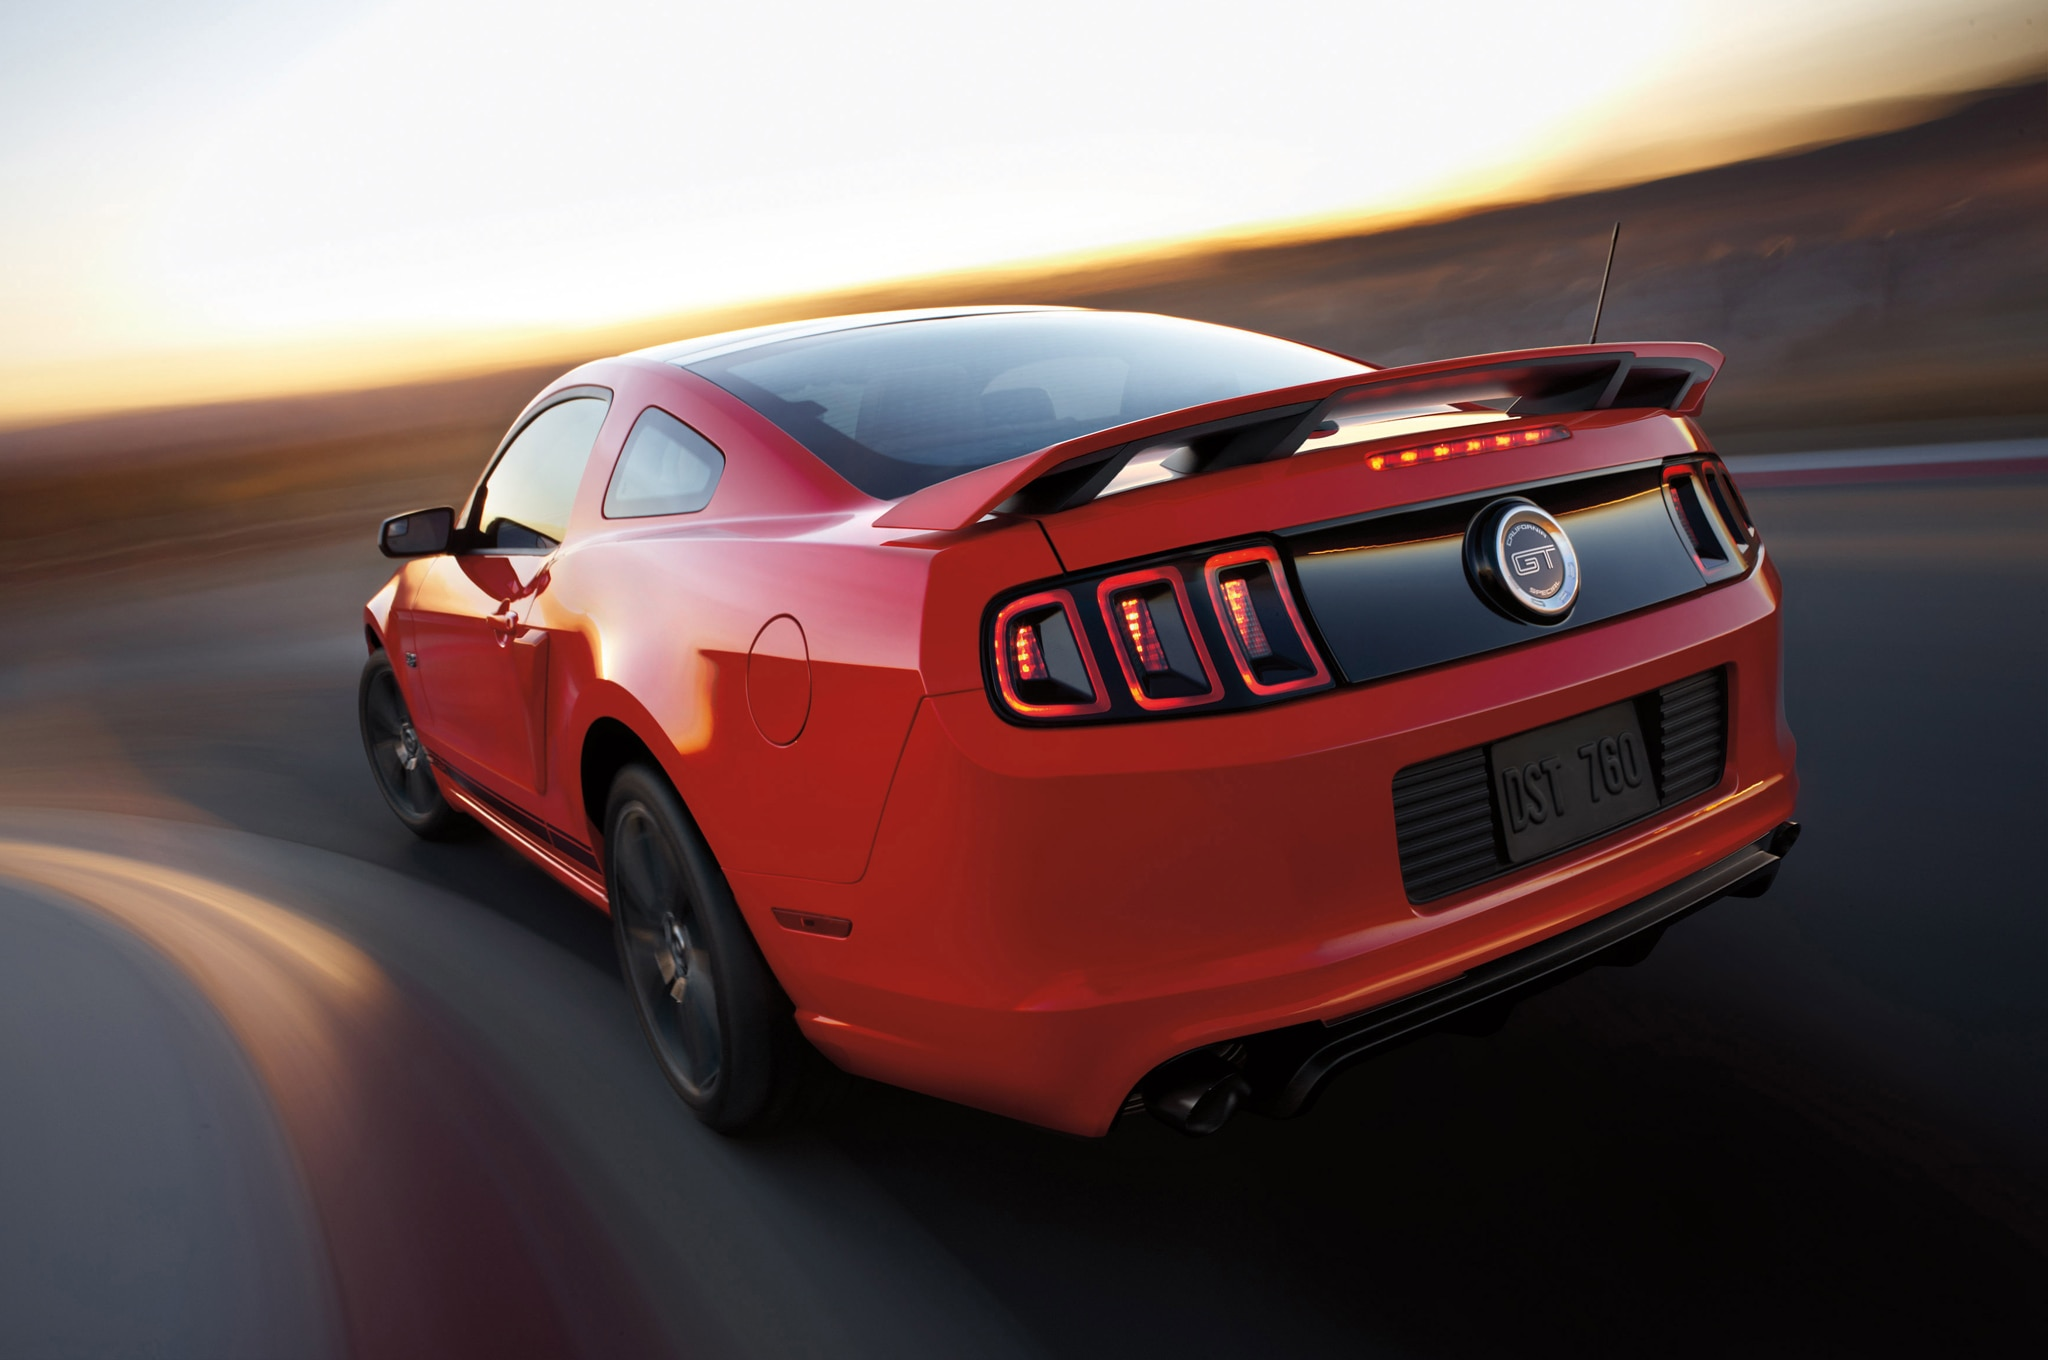 2014 Ford Mustang GT Adds Supercharger Yellow Paint For SEMA